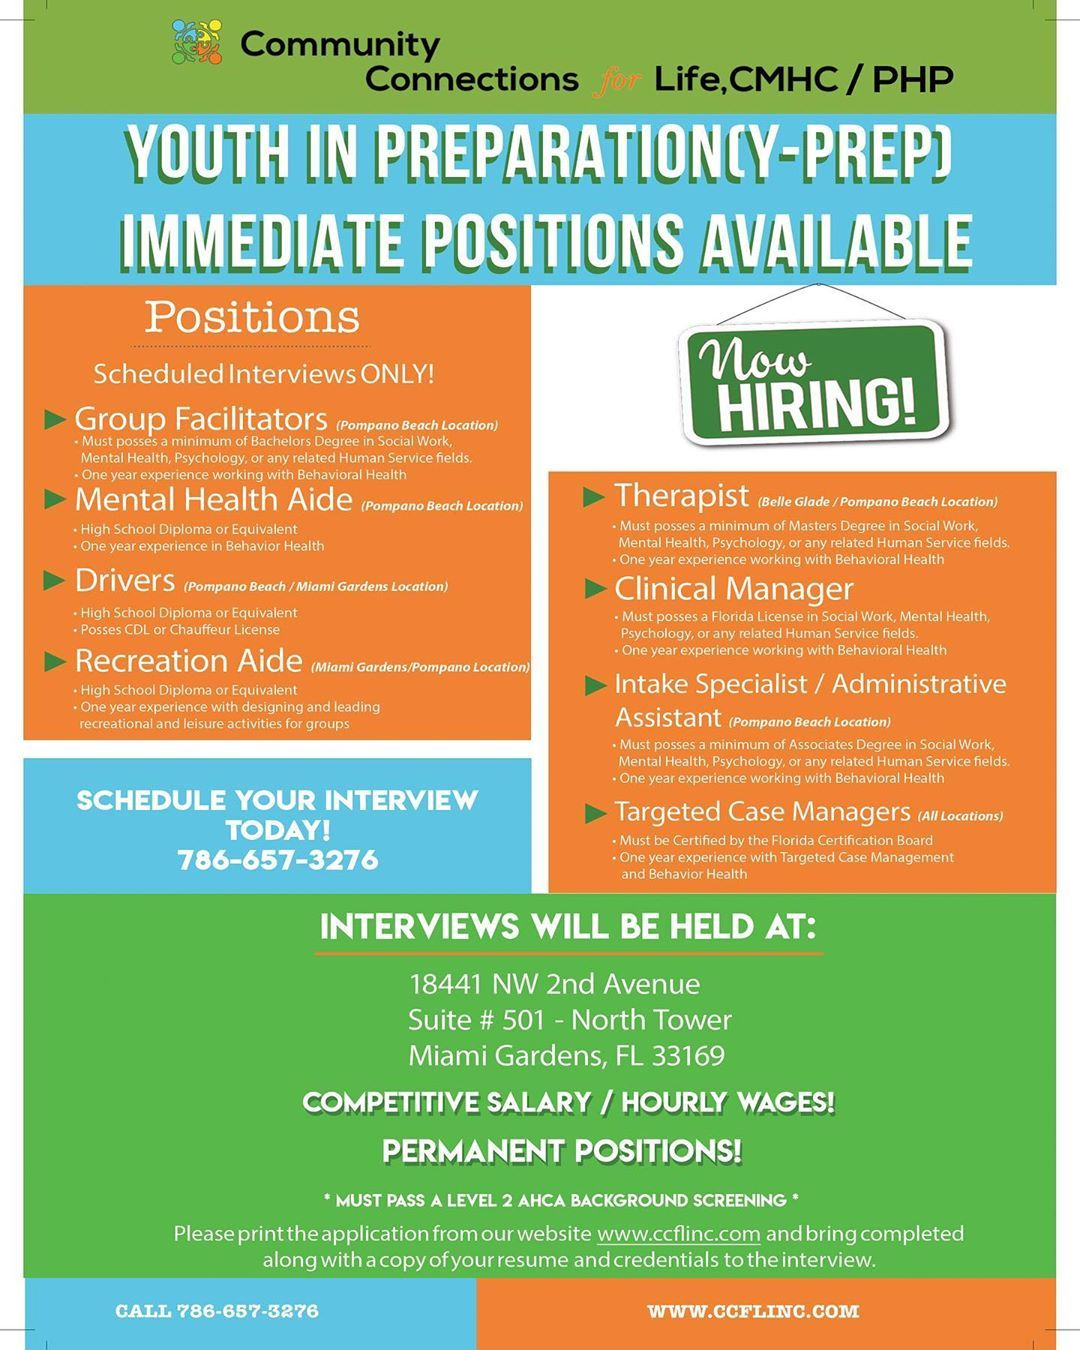 We are now Hiring! Please feel free to print the